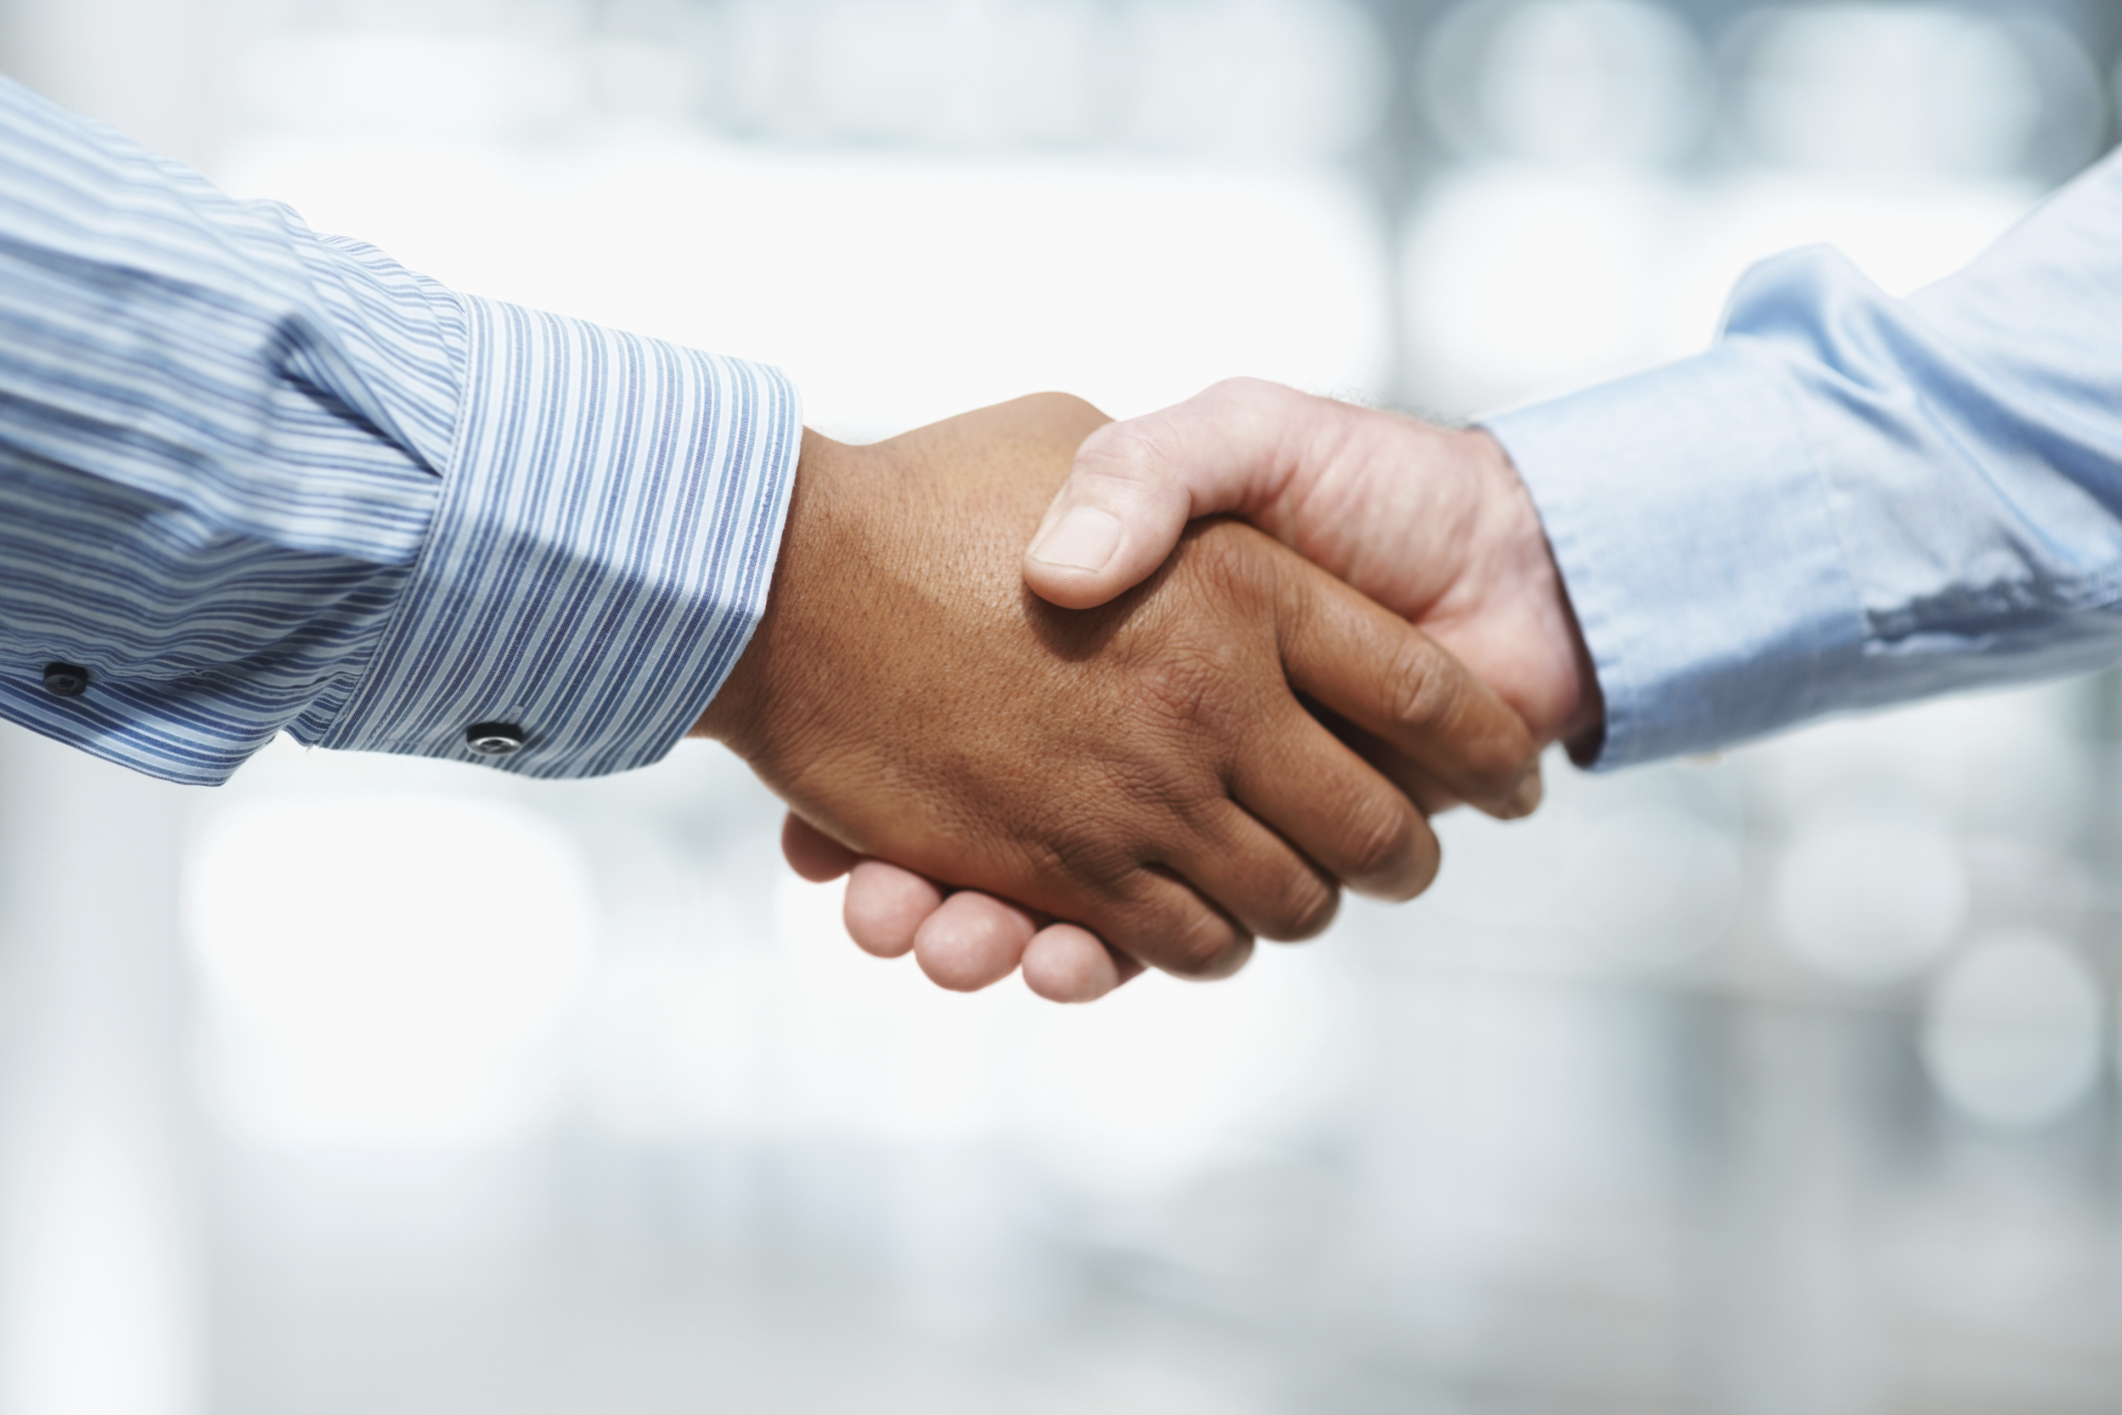 Handshake between two business executives